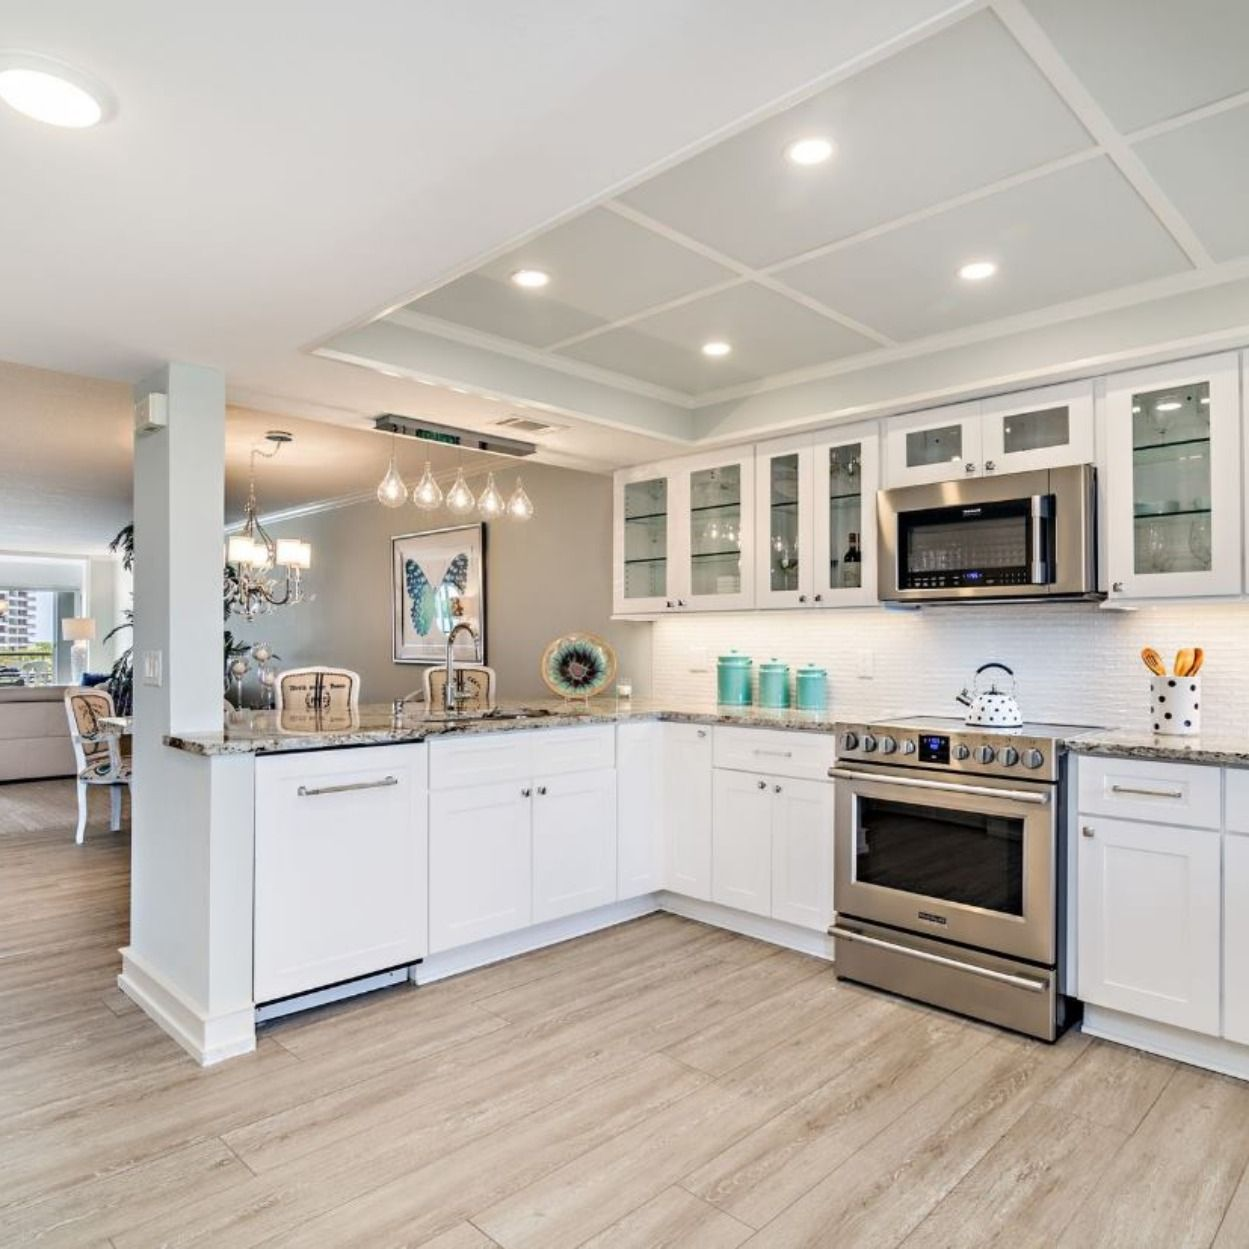 how long does it take to remodel a kitchen kitchen remodel kitchen remodeling projects on kitchen remodel timeline id=28910